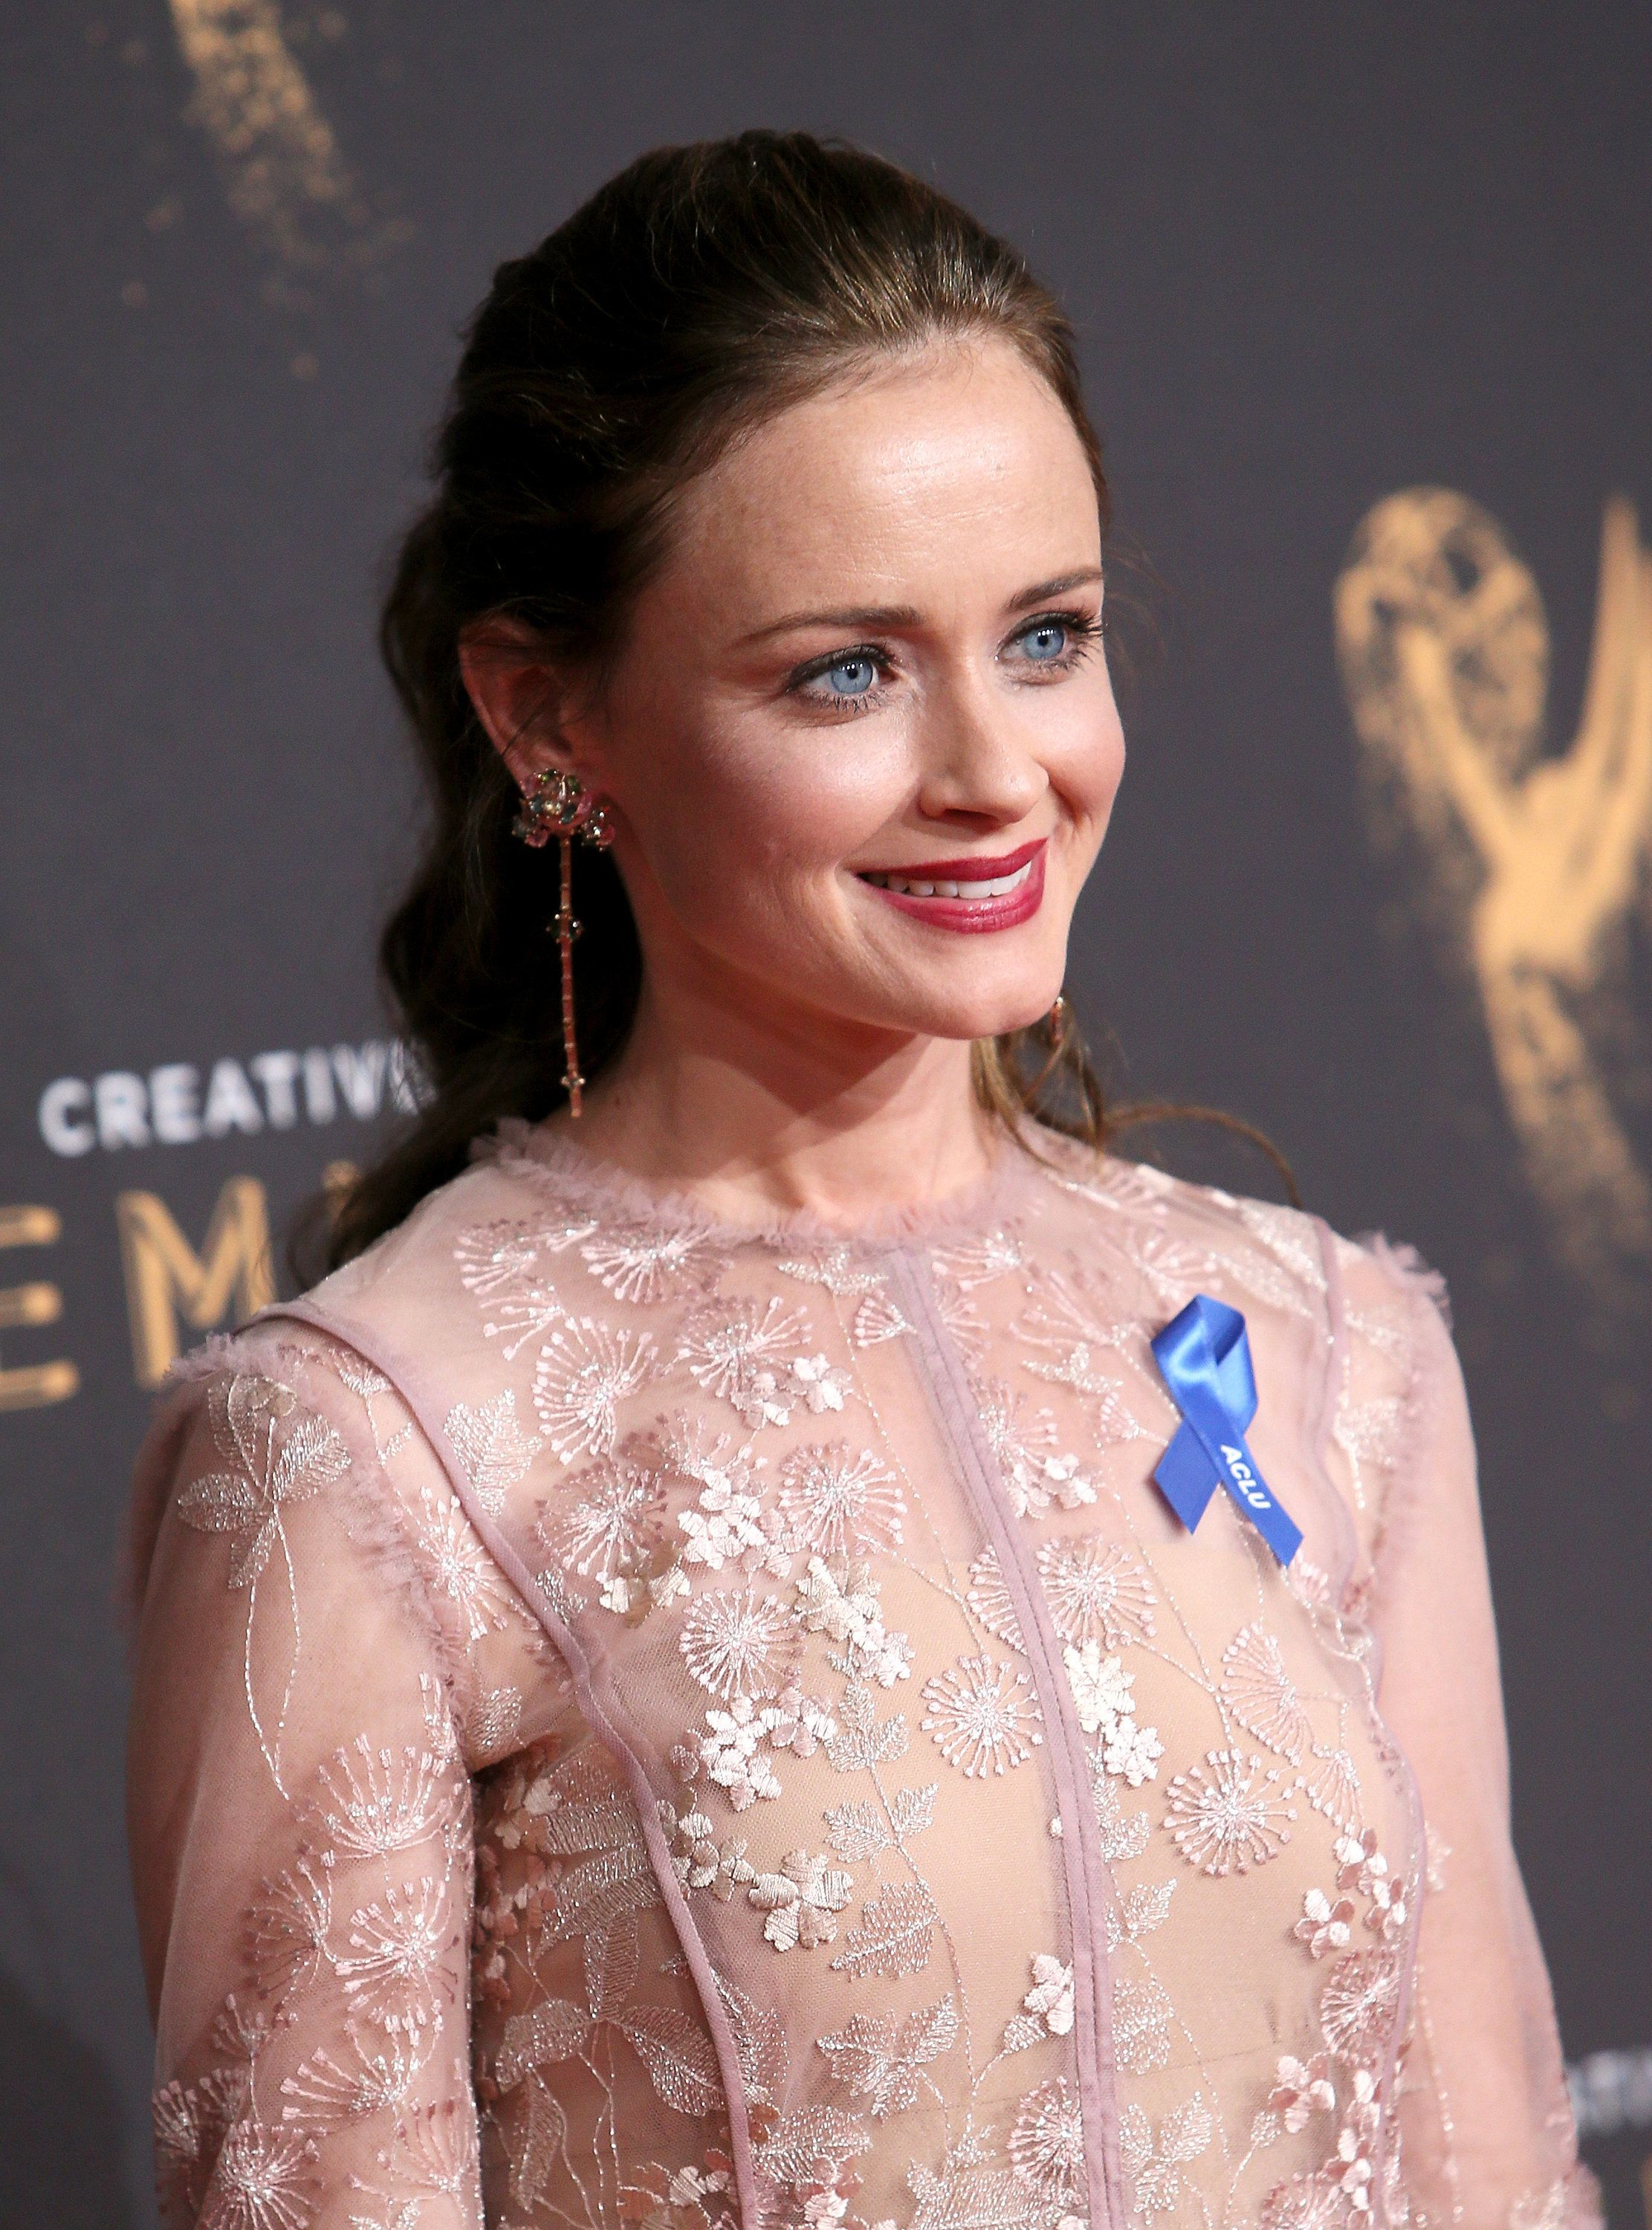 LOS ANGELES, CA - SEPTEMBER 10:  Actress Alexis Bledel attends the 2017 Creative Arts Emmy Awards at Microsoft Theater on September 10, 2017 in Los Angeles, California.  (Photo by David Livingston/Getty Images)